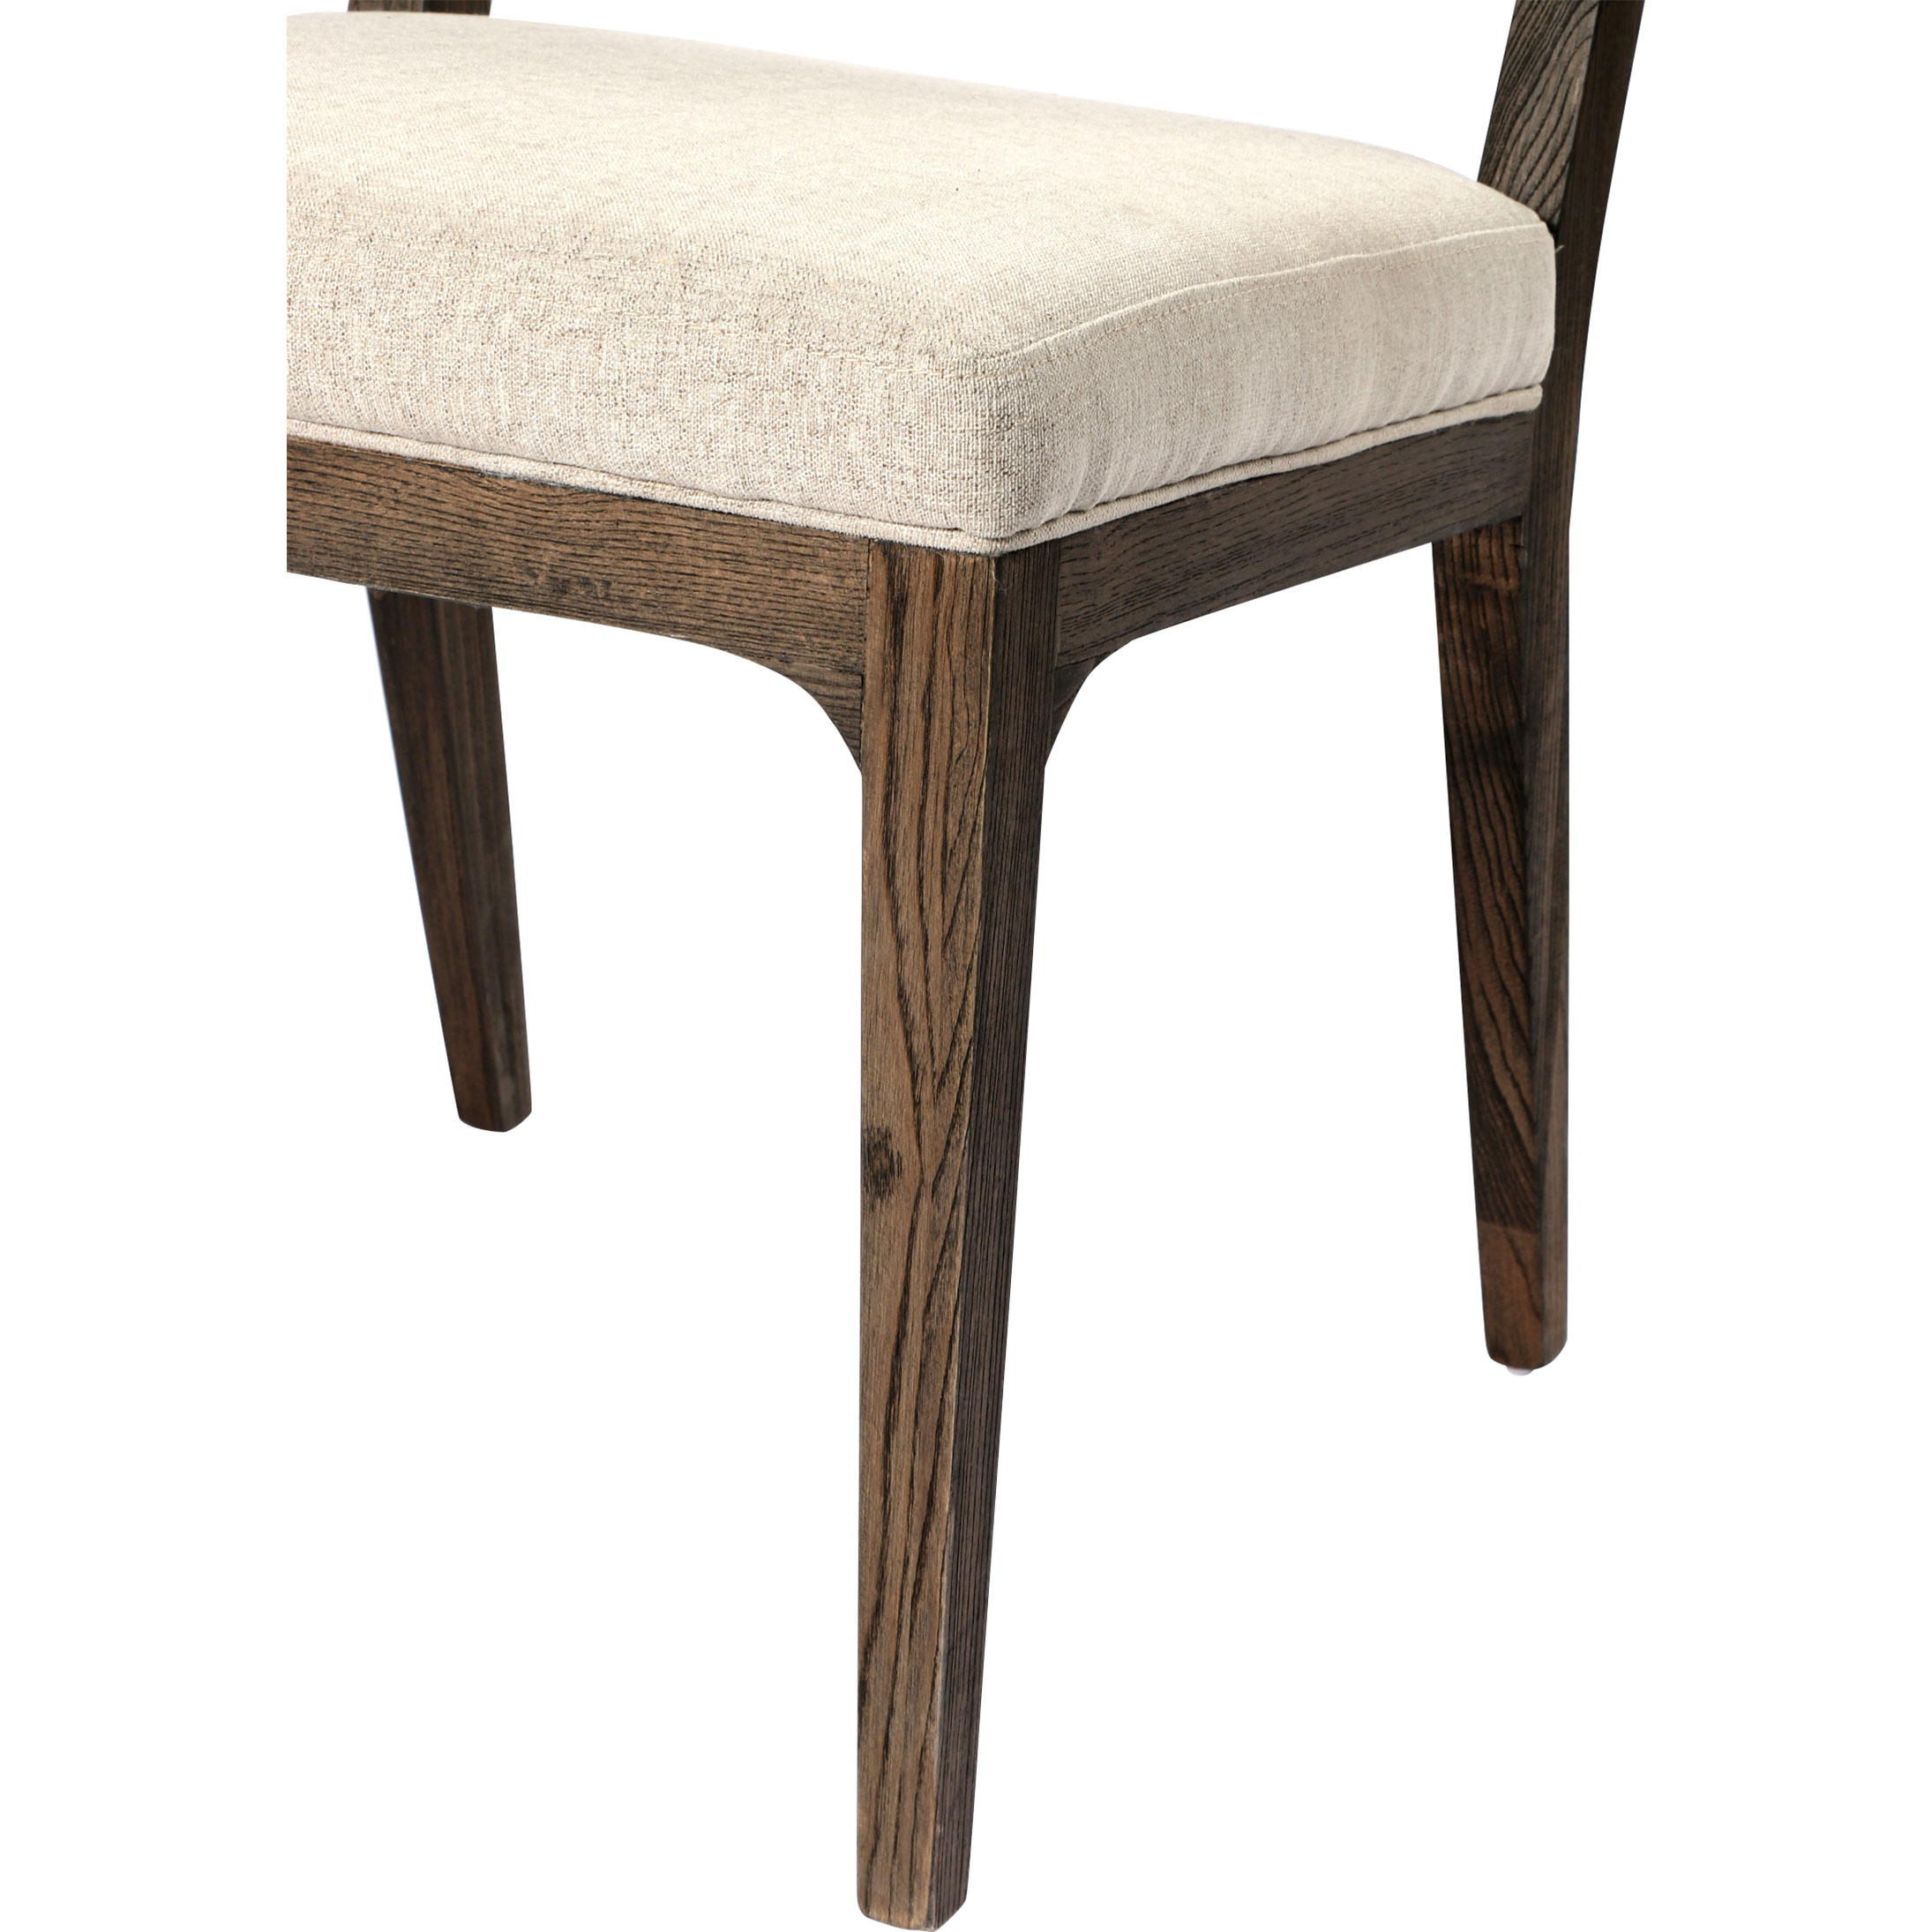 Arlene French Country Tuffed Beige Linen Upholstered Wood Dining Chair